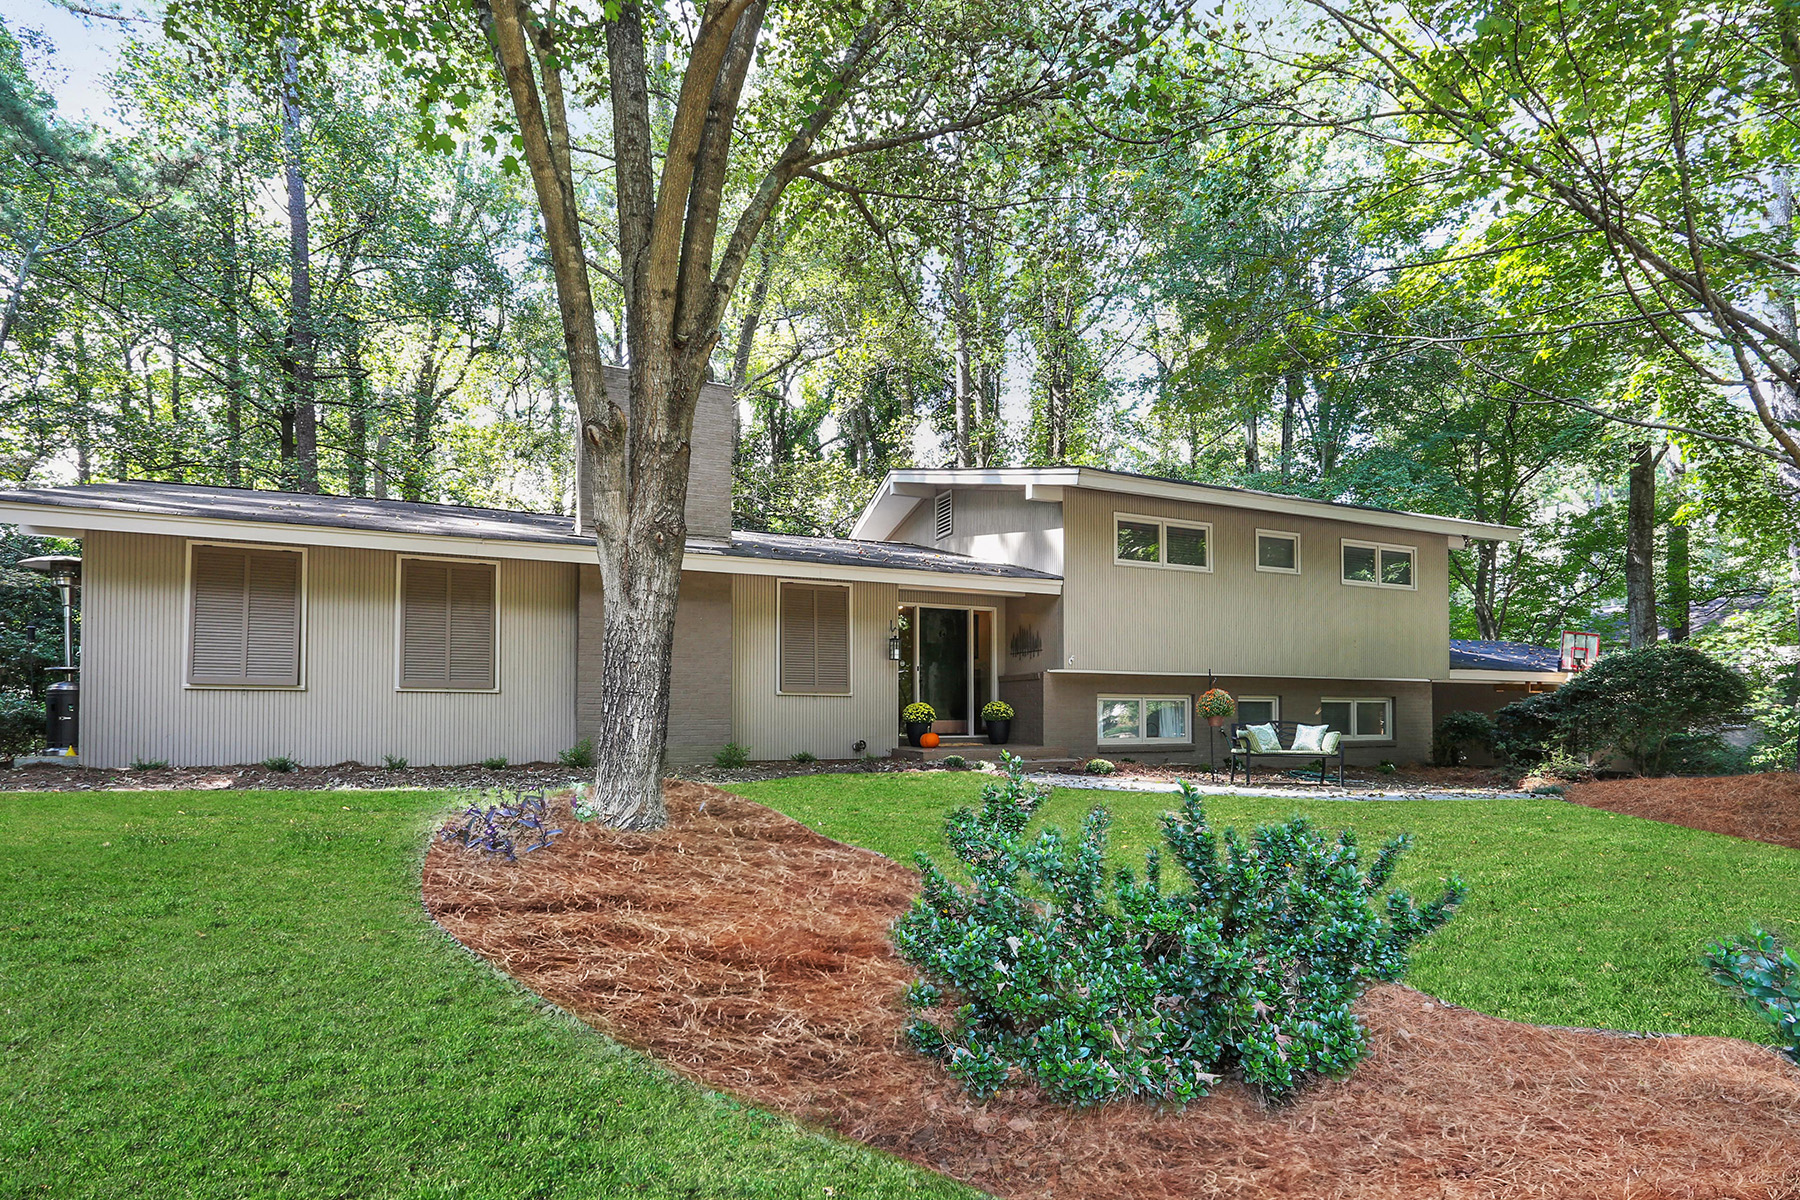 Single Family Home for Sale at Custom Designed Mid-Century Modern With Captivating Outdoor Spaces 7280 Hunters Branch Drive Sandy Springs, Georgia 30328 United States